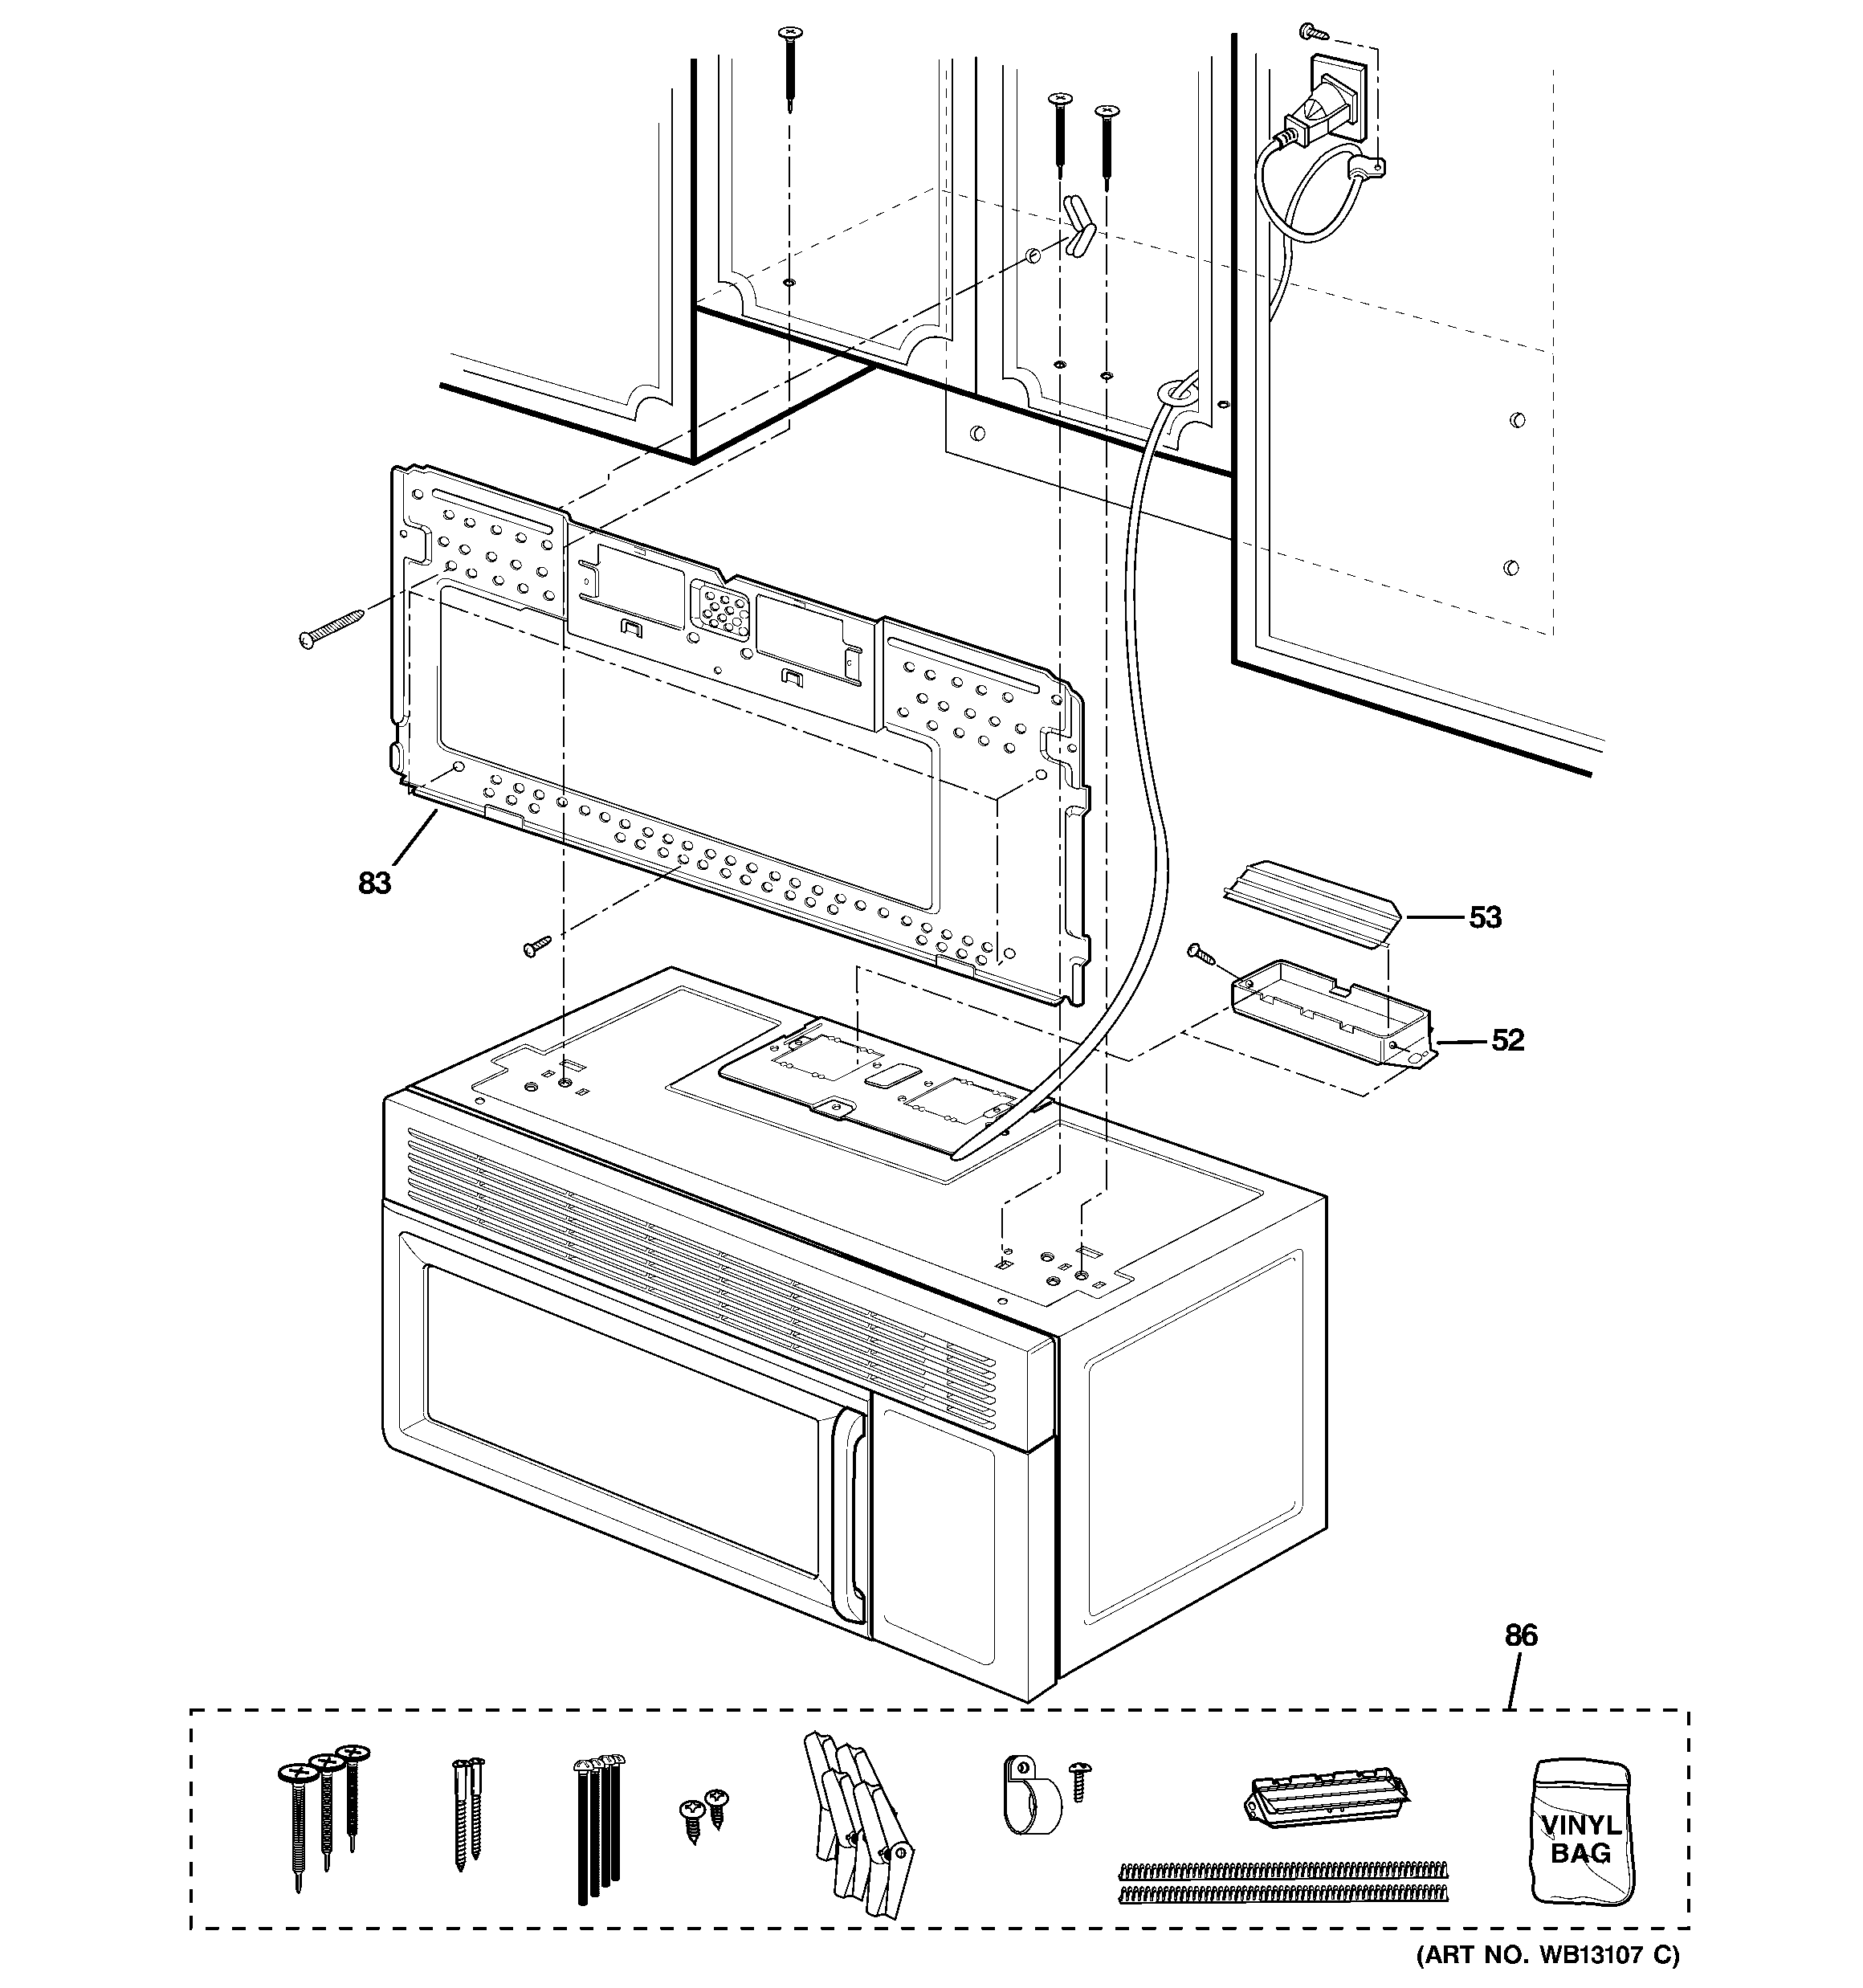 GE JVM1630CJ02 installation parts diagram